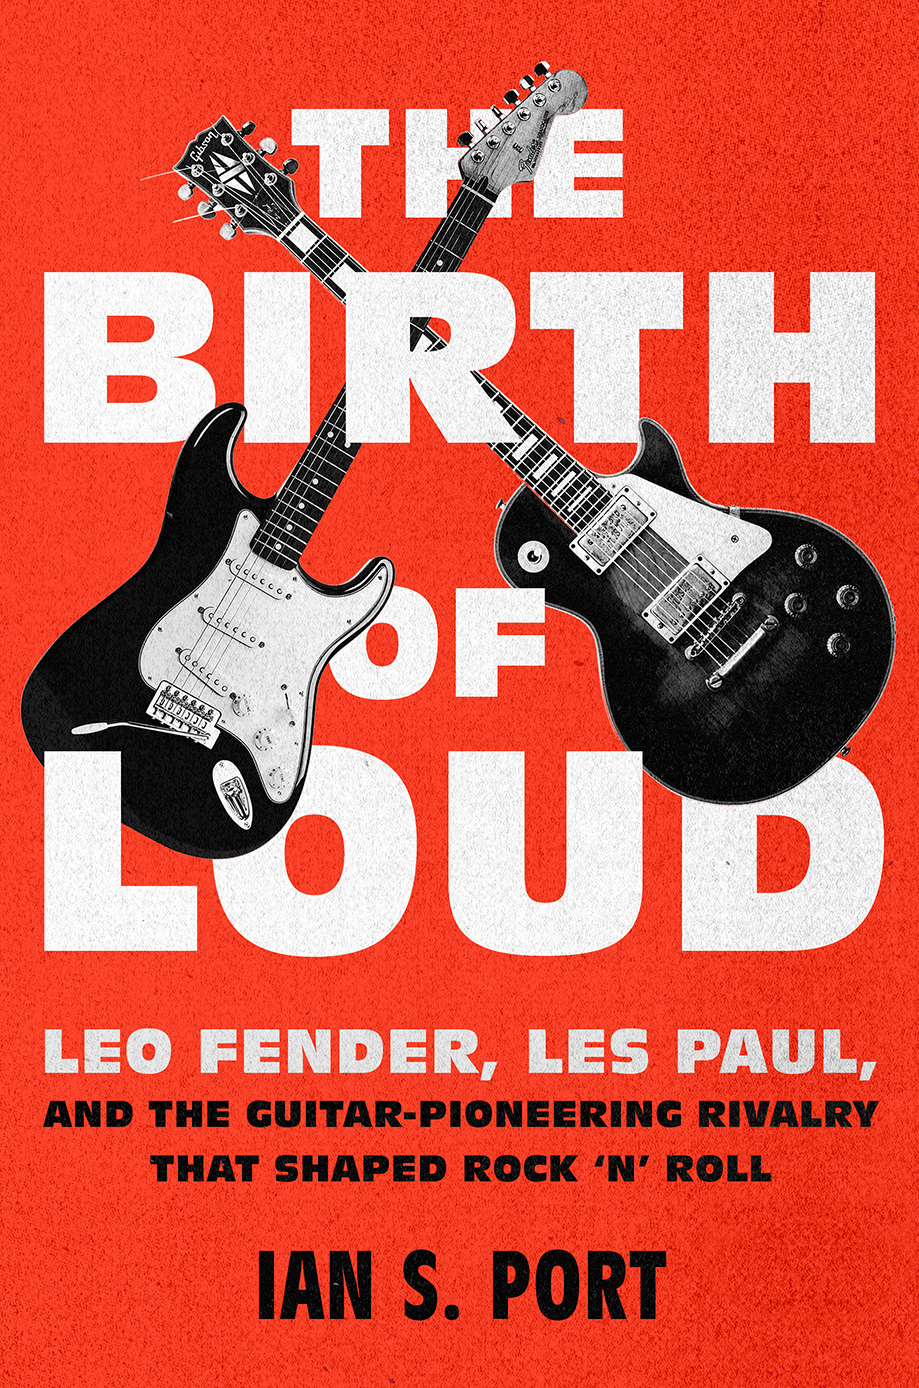 Birth of Loud Cover Image.JPG